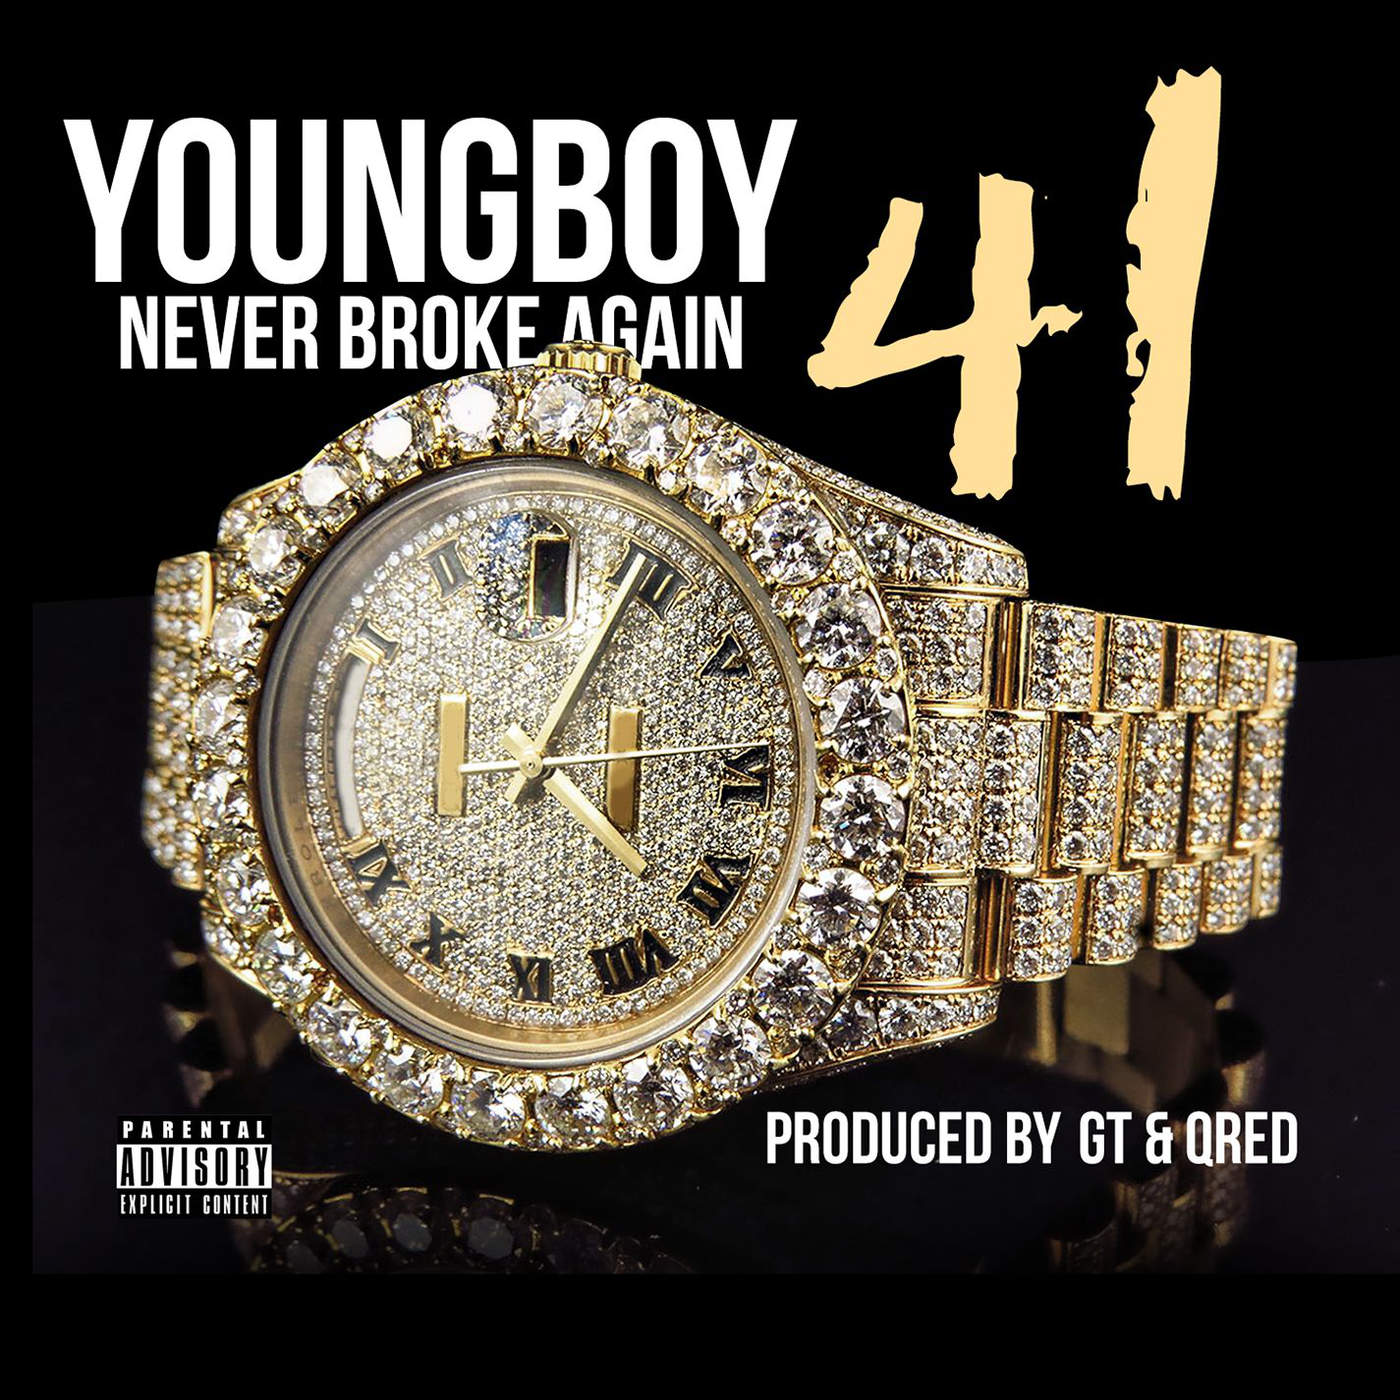 Youngboy Never Broke Again - 41 - Single Cover